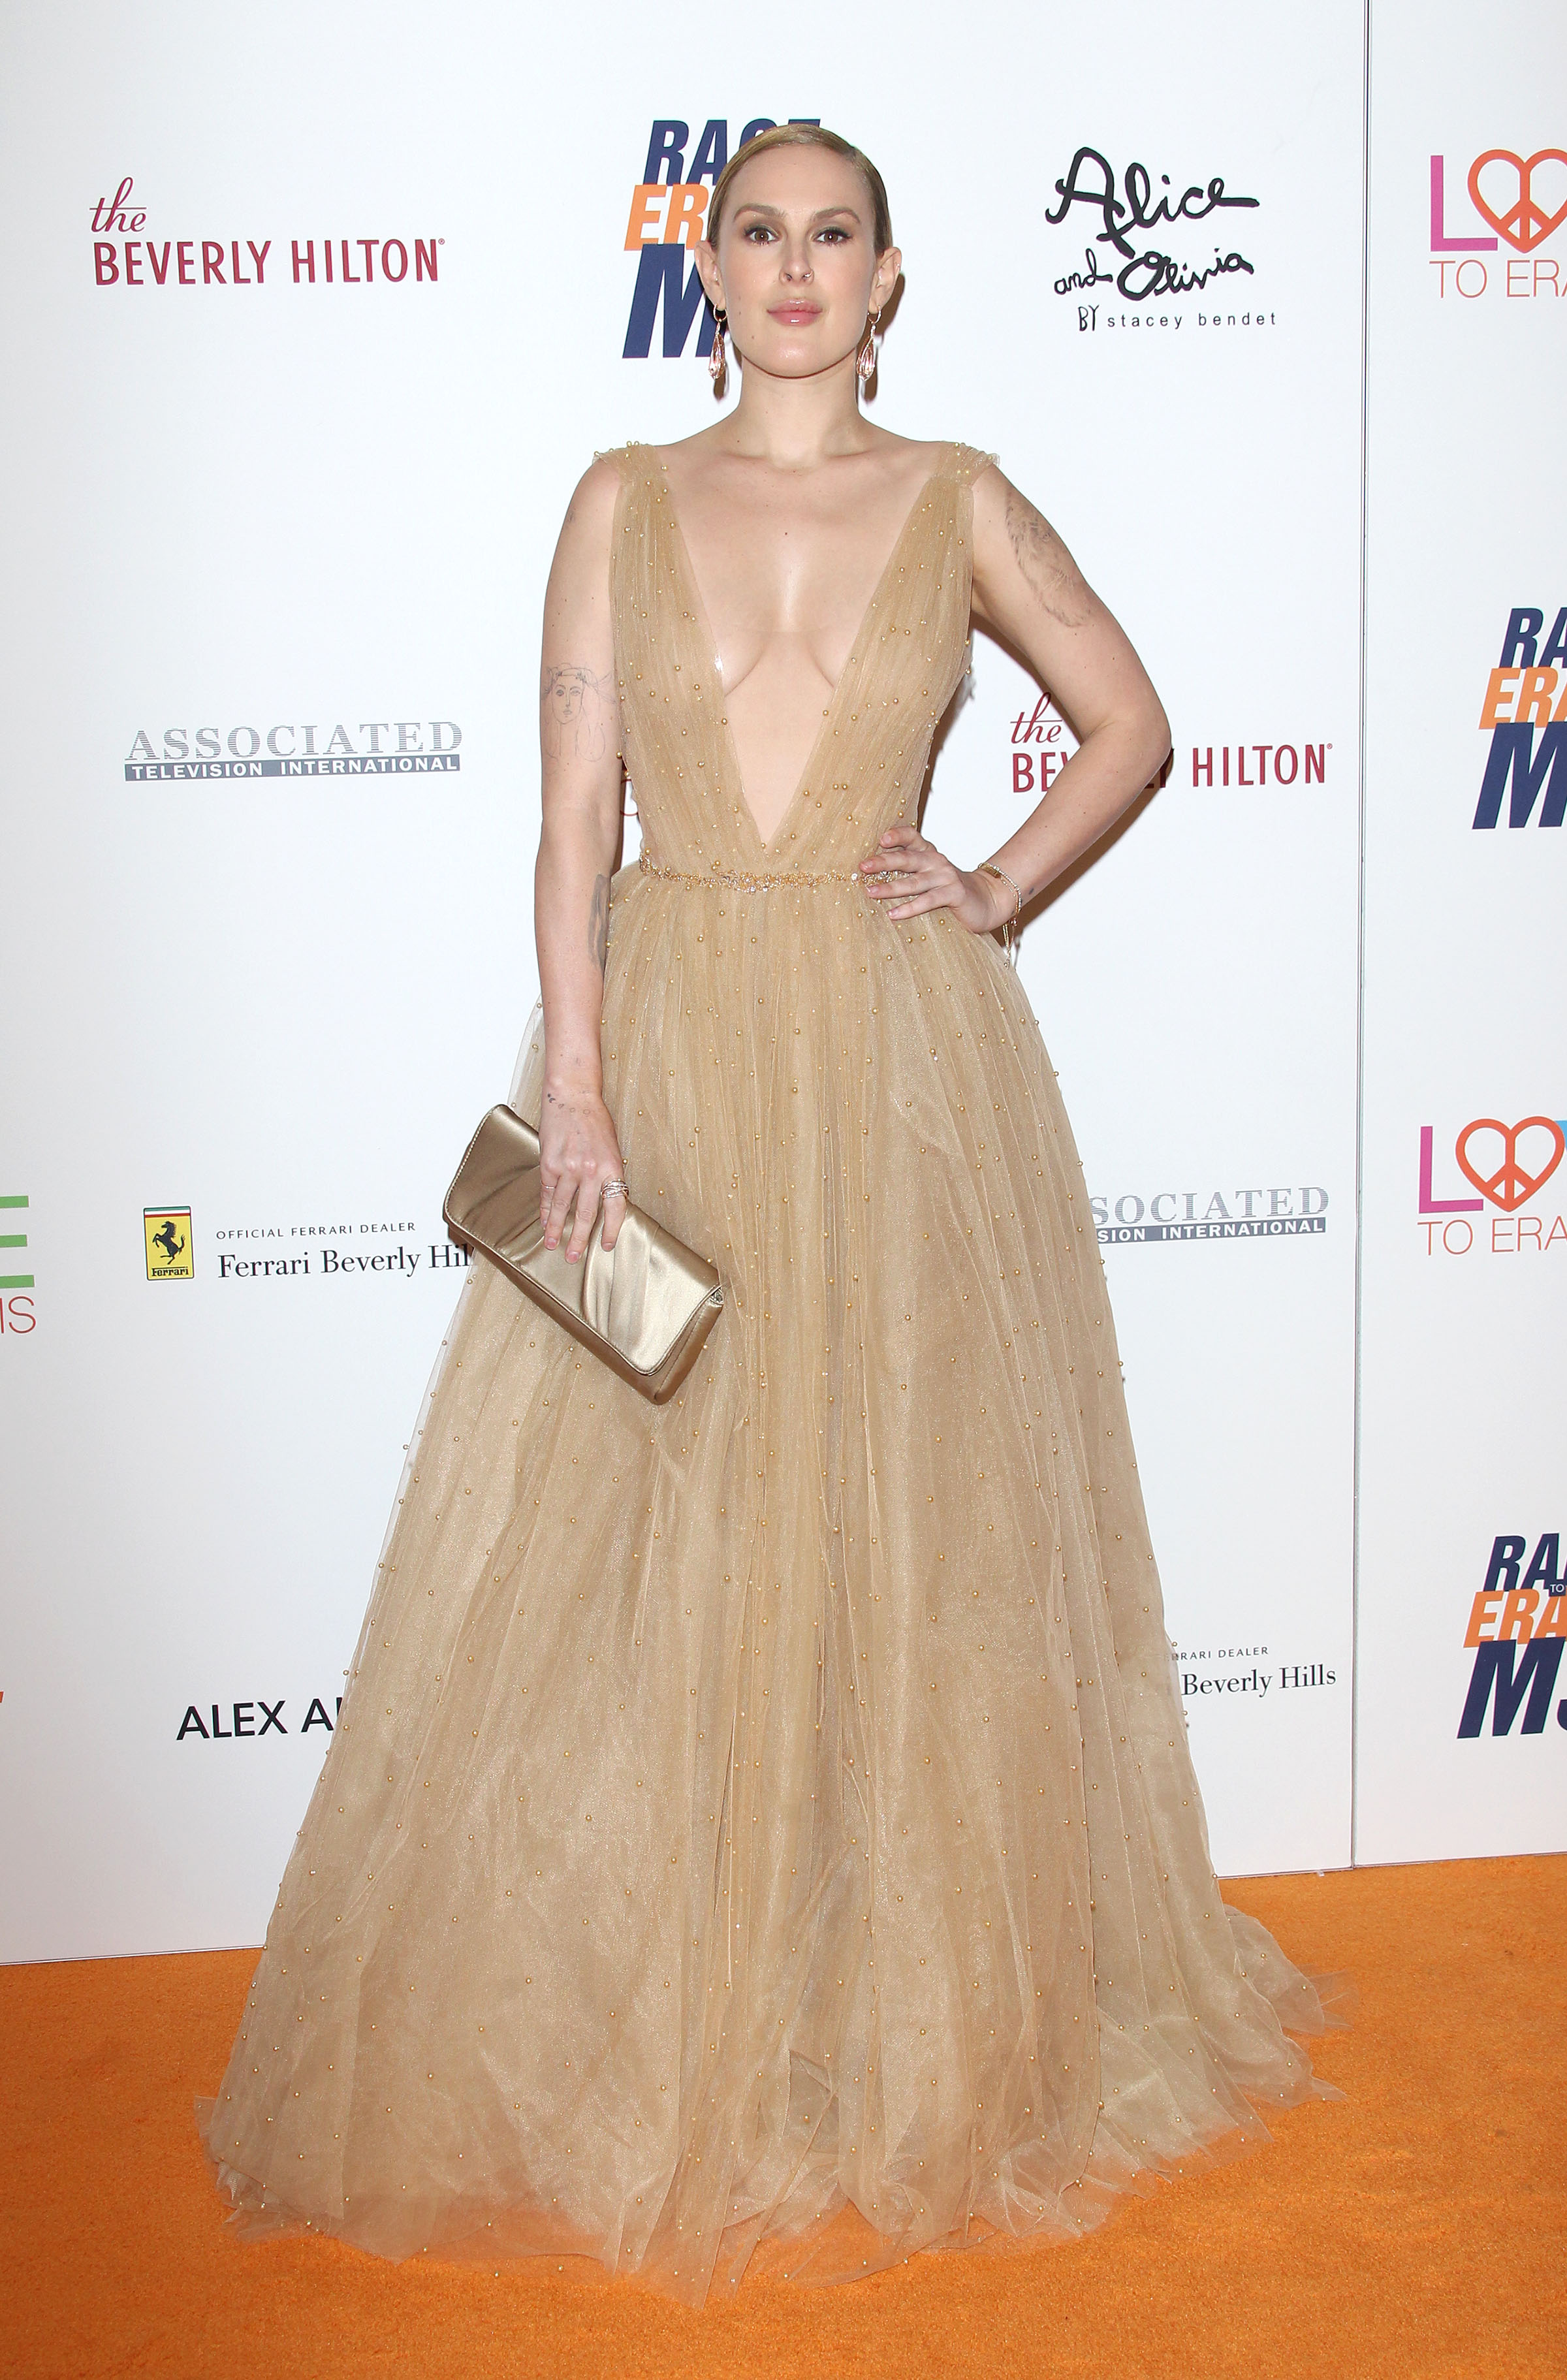 25th Annual Race to Erase MS Gala - Beverly Hills <P> Pictured: Rumer Willis <B>Ref: SPL1685392  200418  </B><BR/> Picture by: Jen Lowery / Splash News<BR/> </P><P> <B>Splash News and Pictures</B><BR/> Los Angeles:310-821-2666<BR/> New York:212-619-2666<BR/> London:870-934-2666<BR/> <span id=